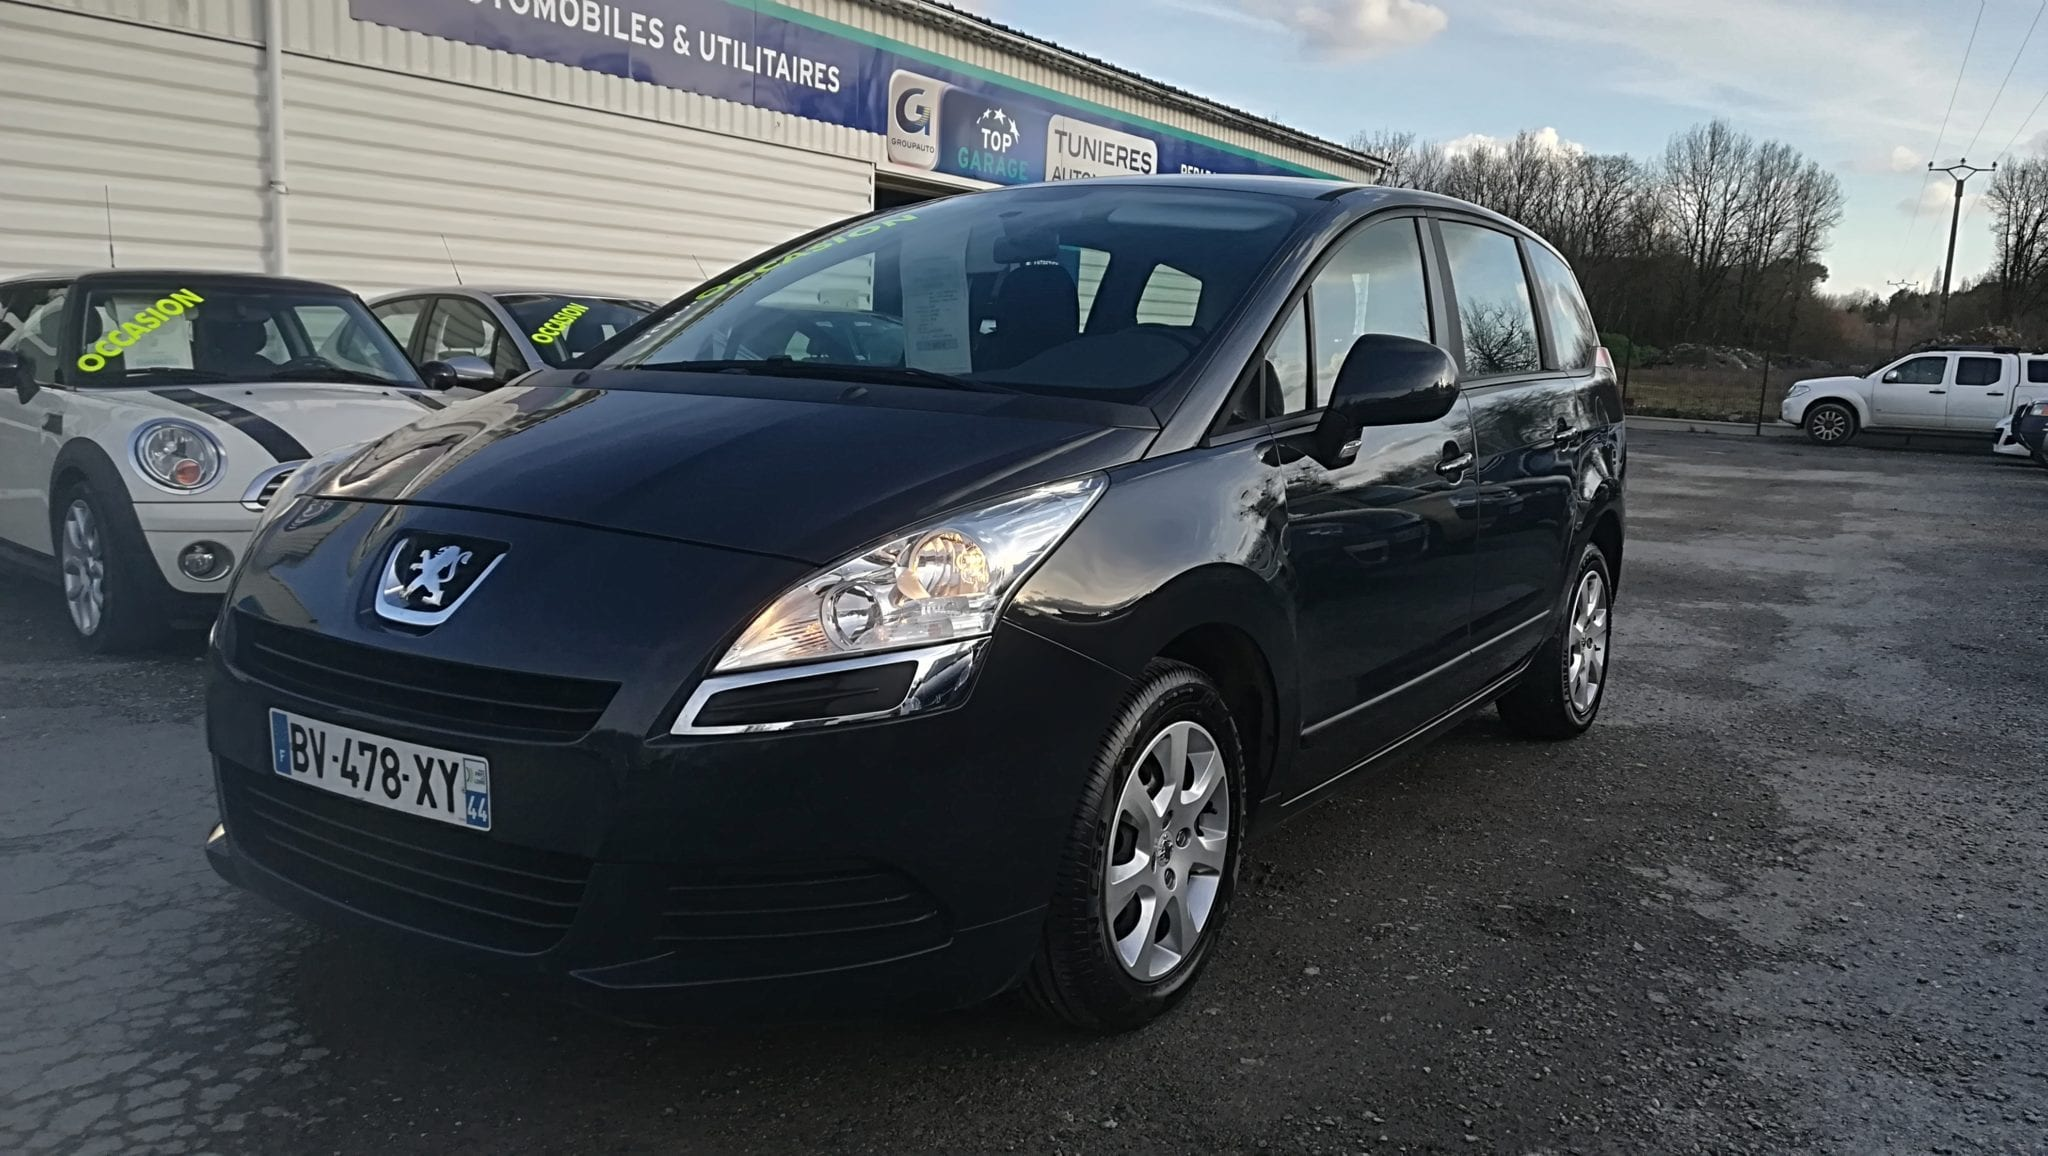 Peugeot 5008 1.6 L HDI 112 CV BVM FINITION ACCESS 5 PLACES - Image 1